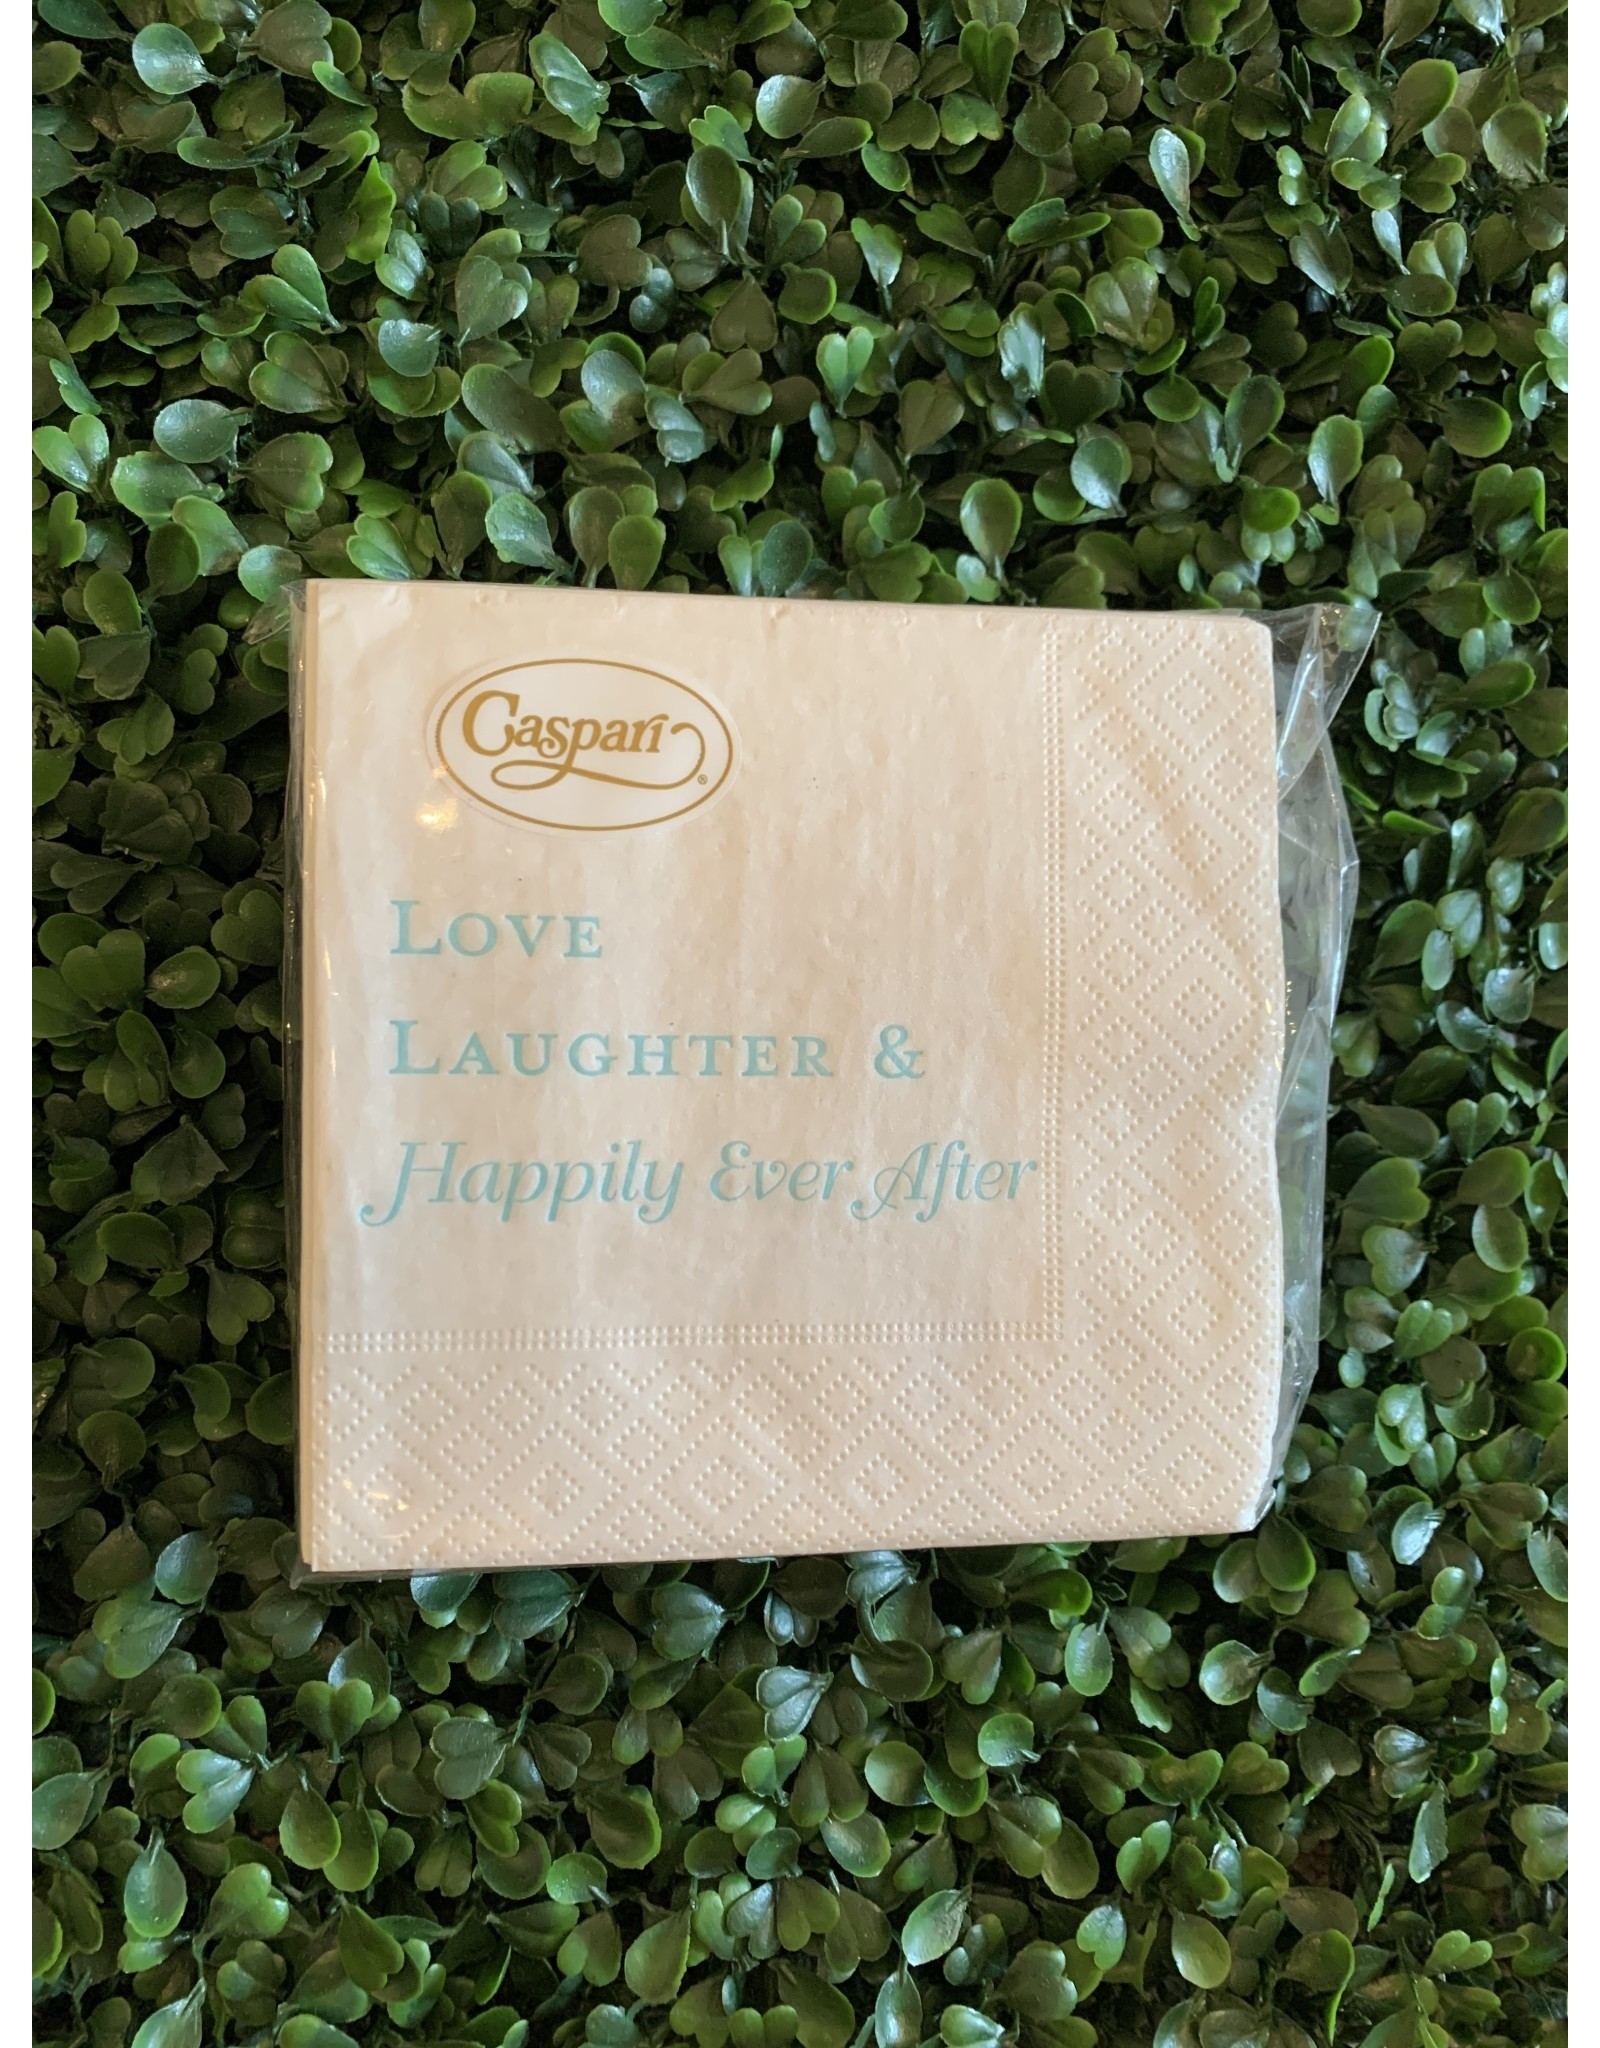 Caspari Love Laughter and Happily Ever After Napkin